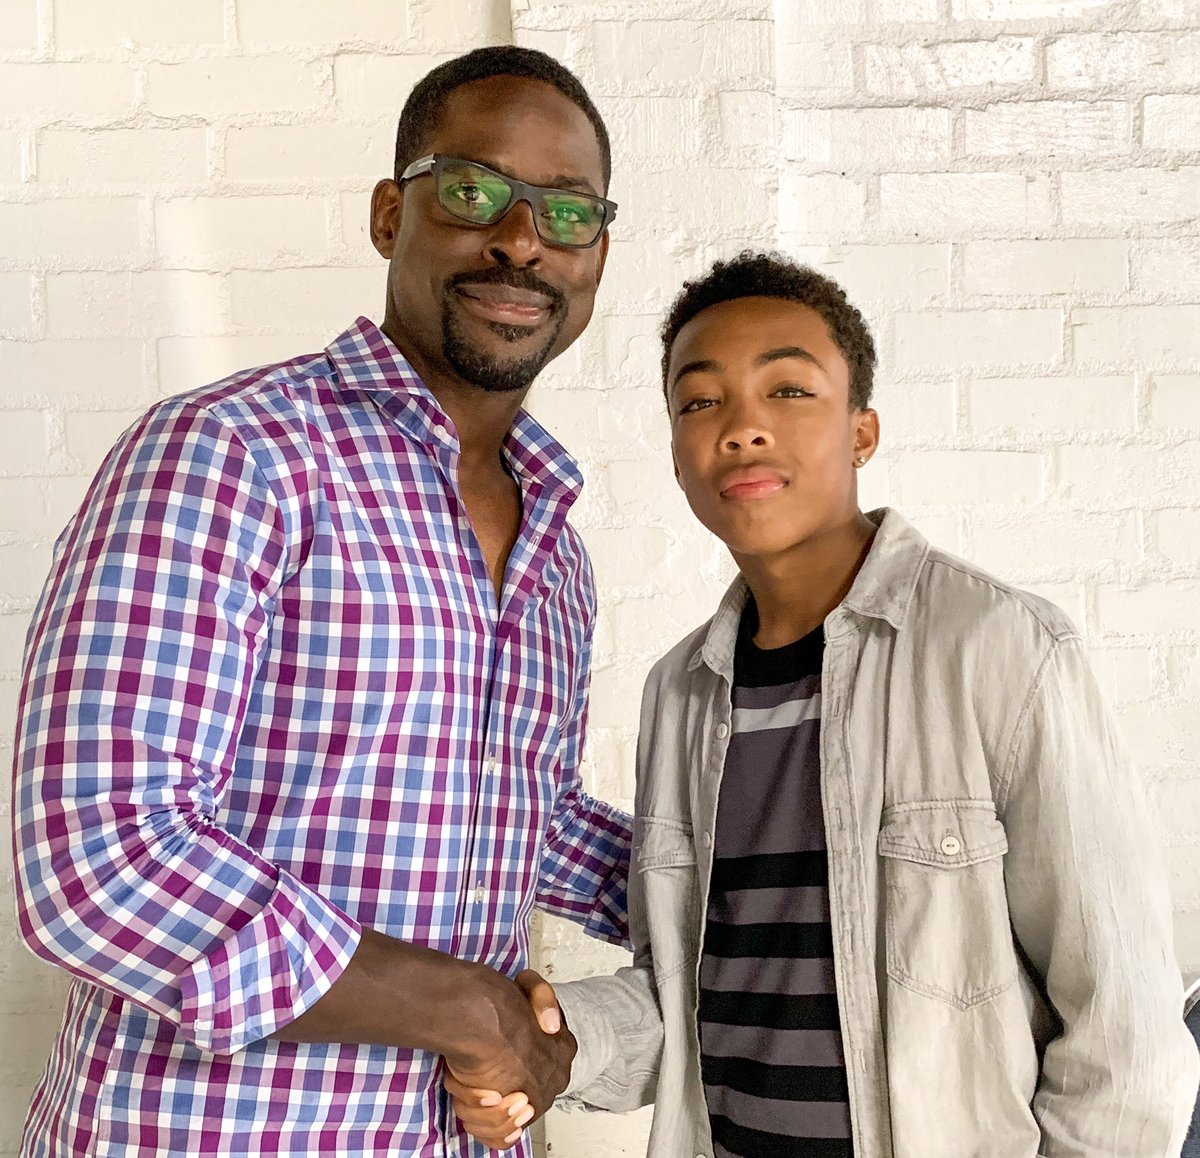 This Is Us: The Internet Collectively Cringed When Malik Told Randall He Has a Daughter